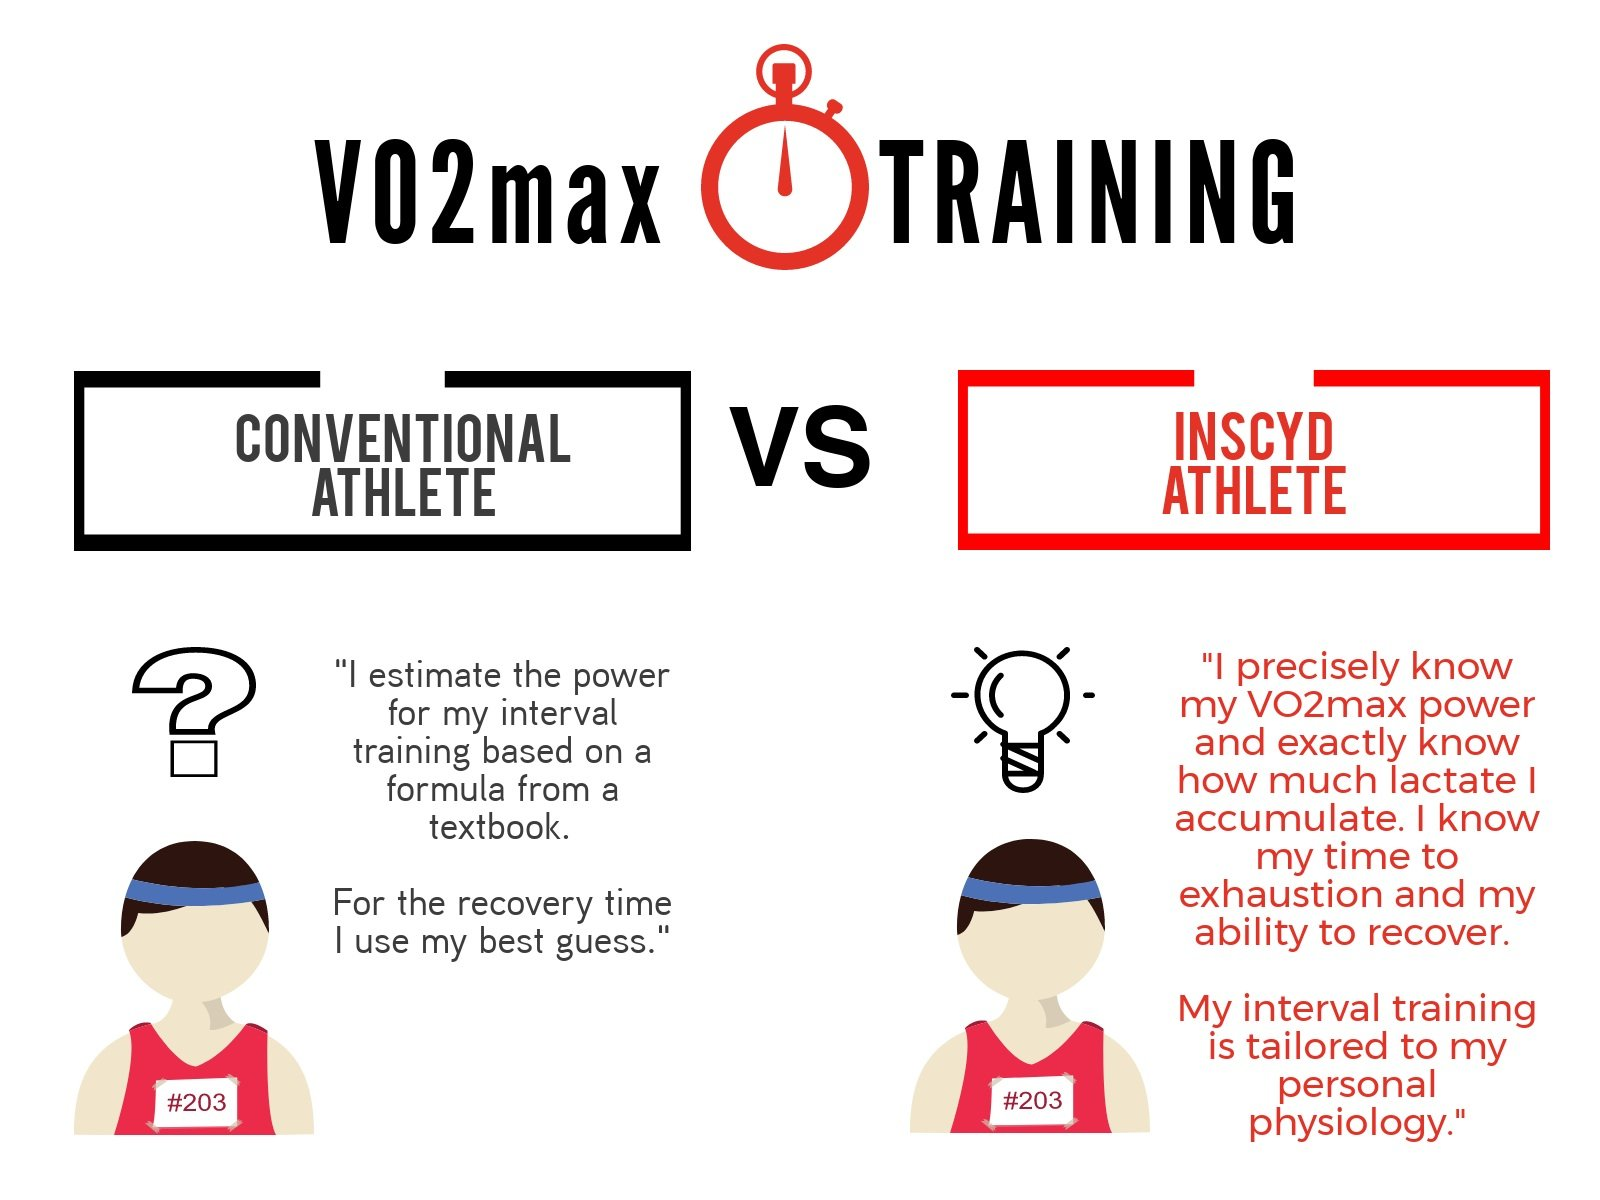 VO2max - Critical Power testing with INSCYD